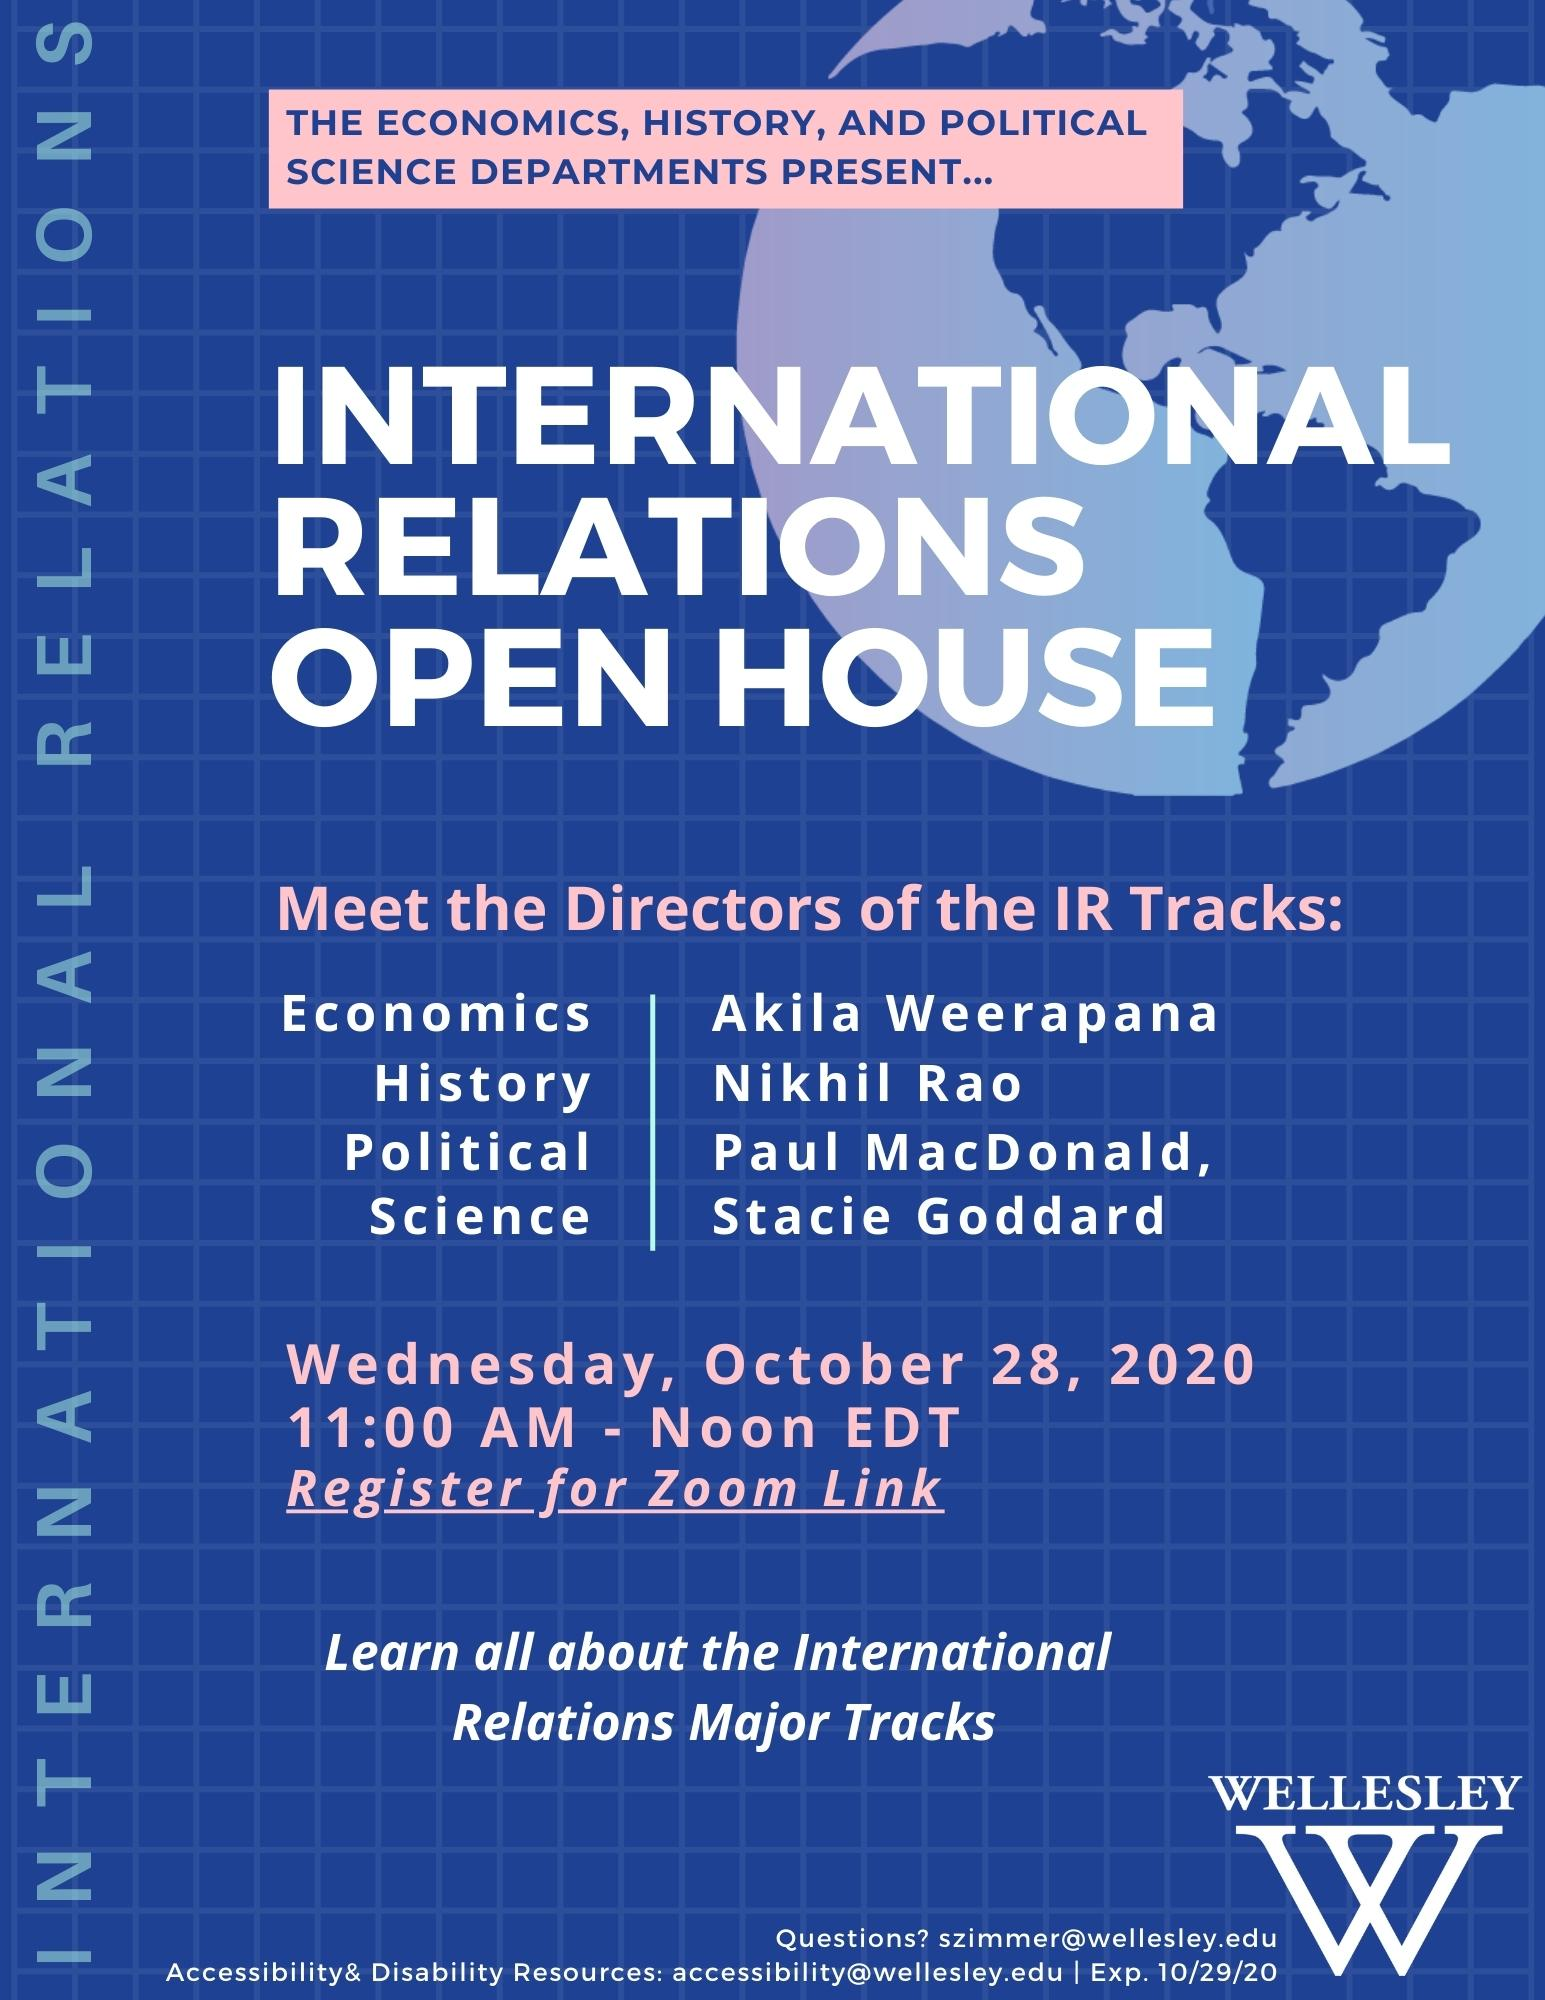 International Relations Open House